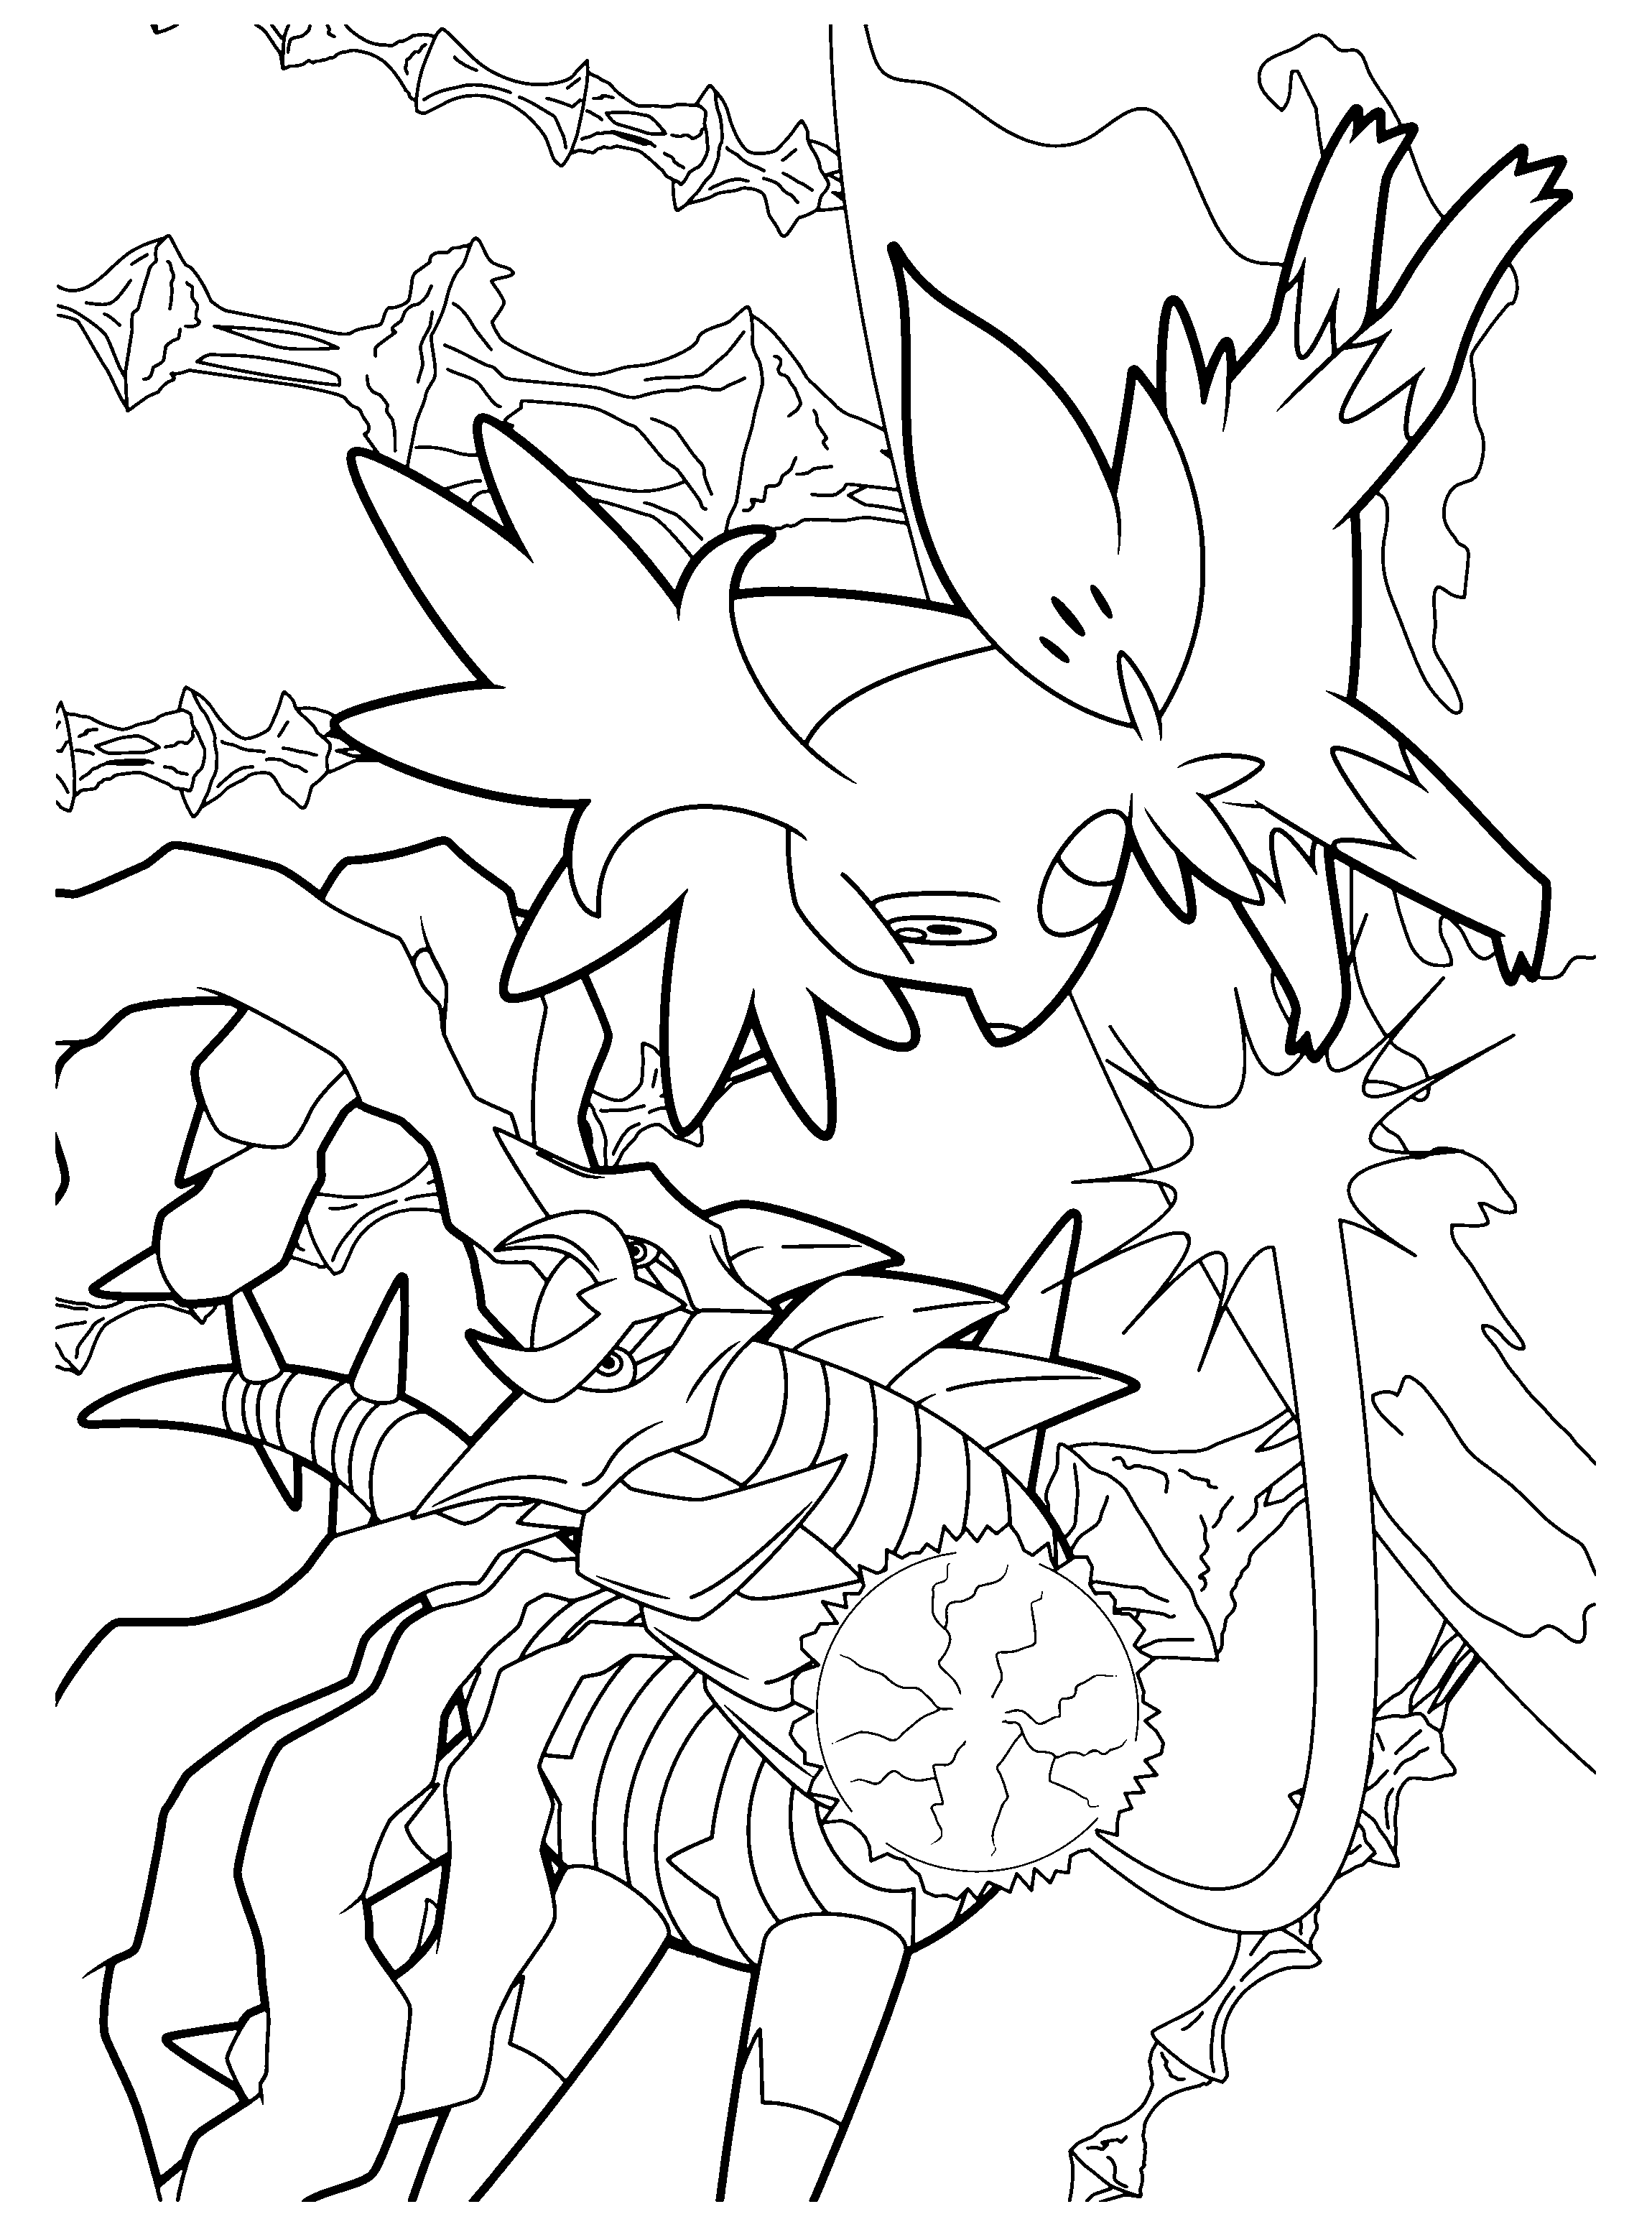 coloring pages giratina - photo#18